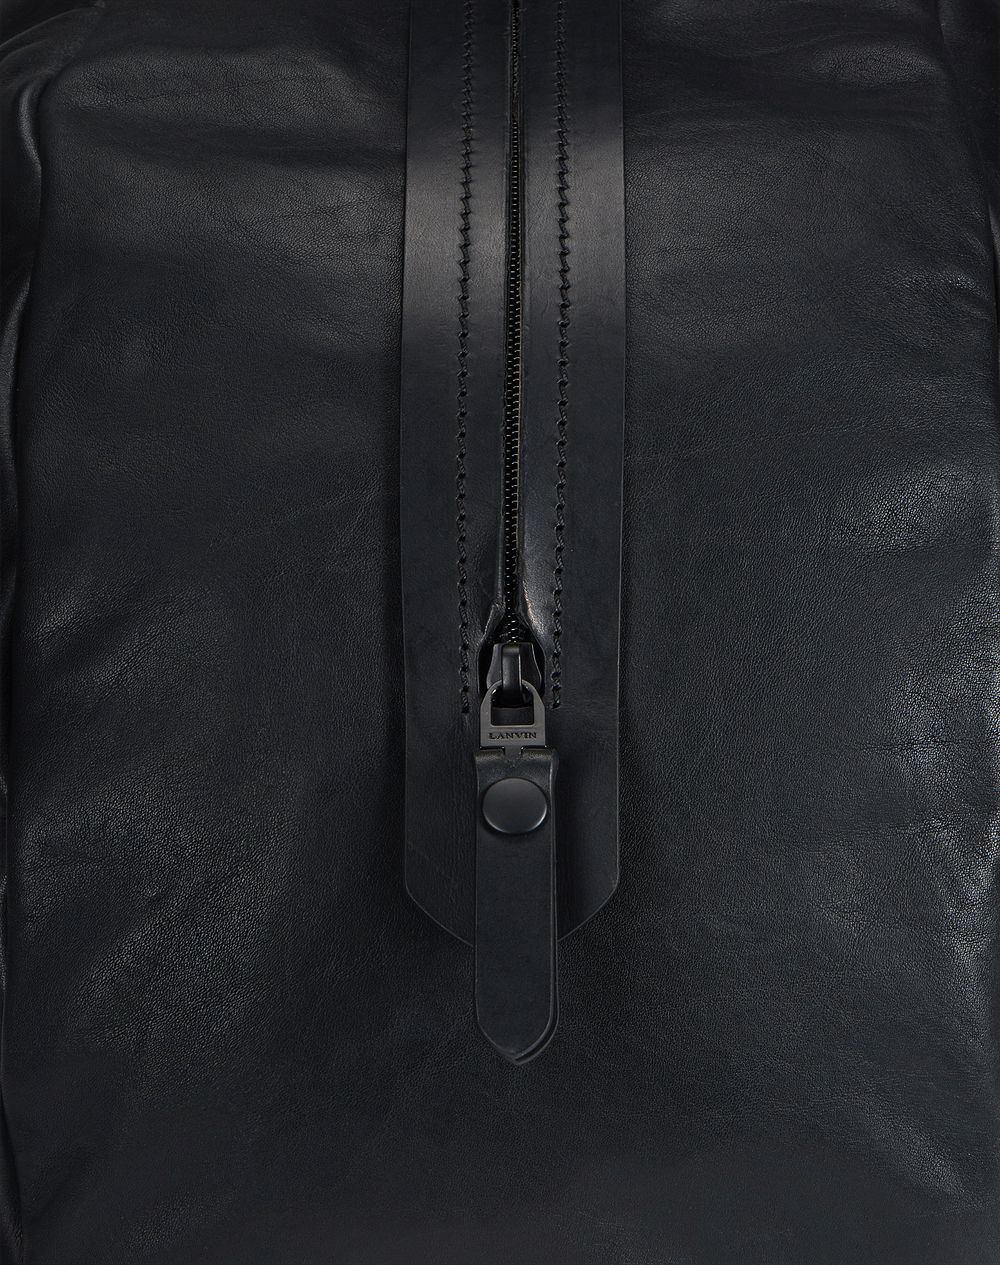 SMOOTH CALFSKIN BOWLING BAG - Lanvin